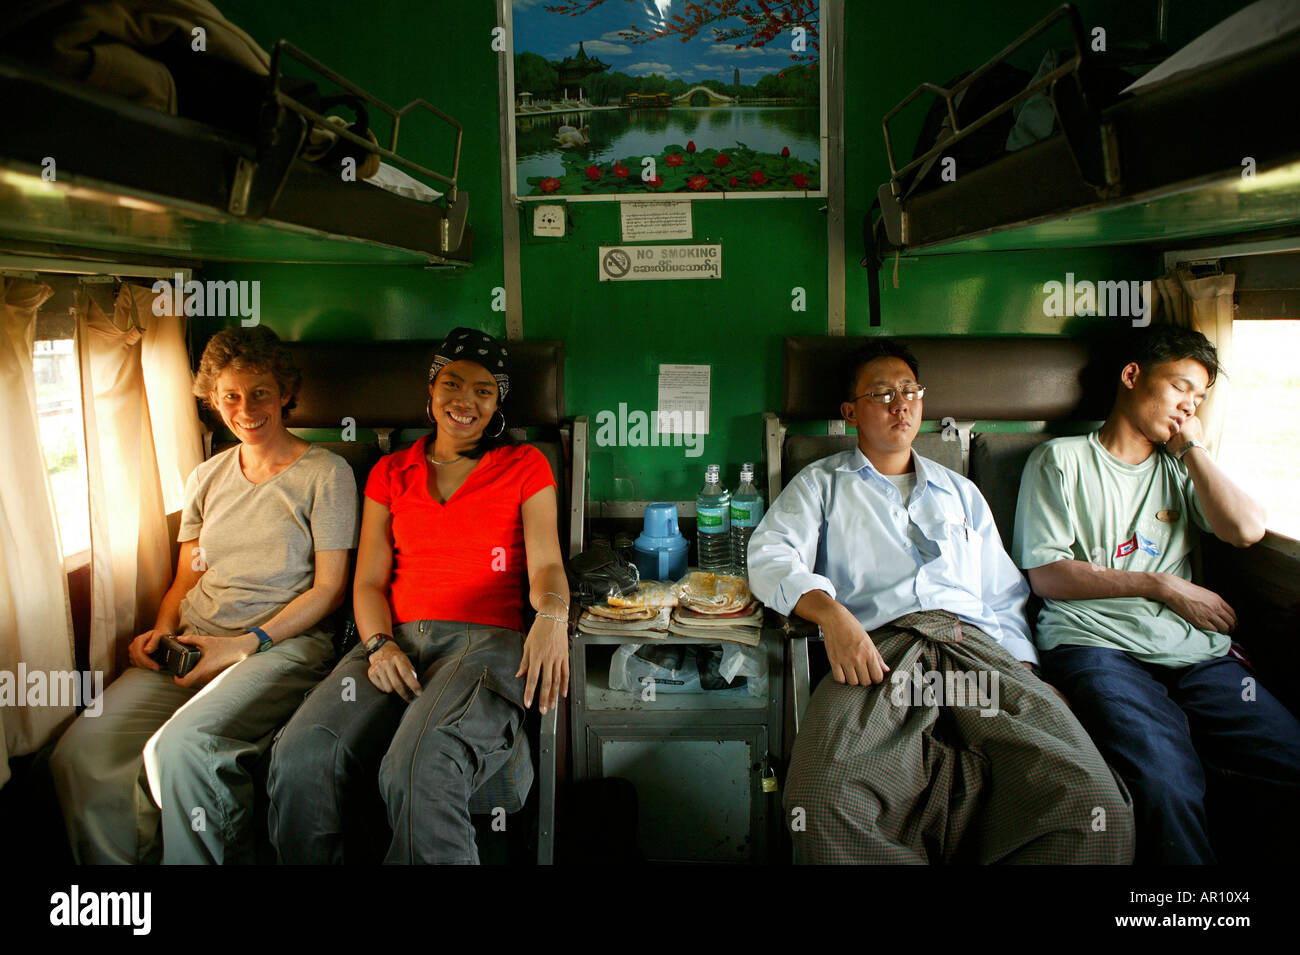 sleeper train journey, Burma, Myanmar - Stock Image